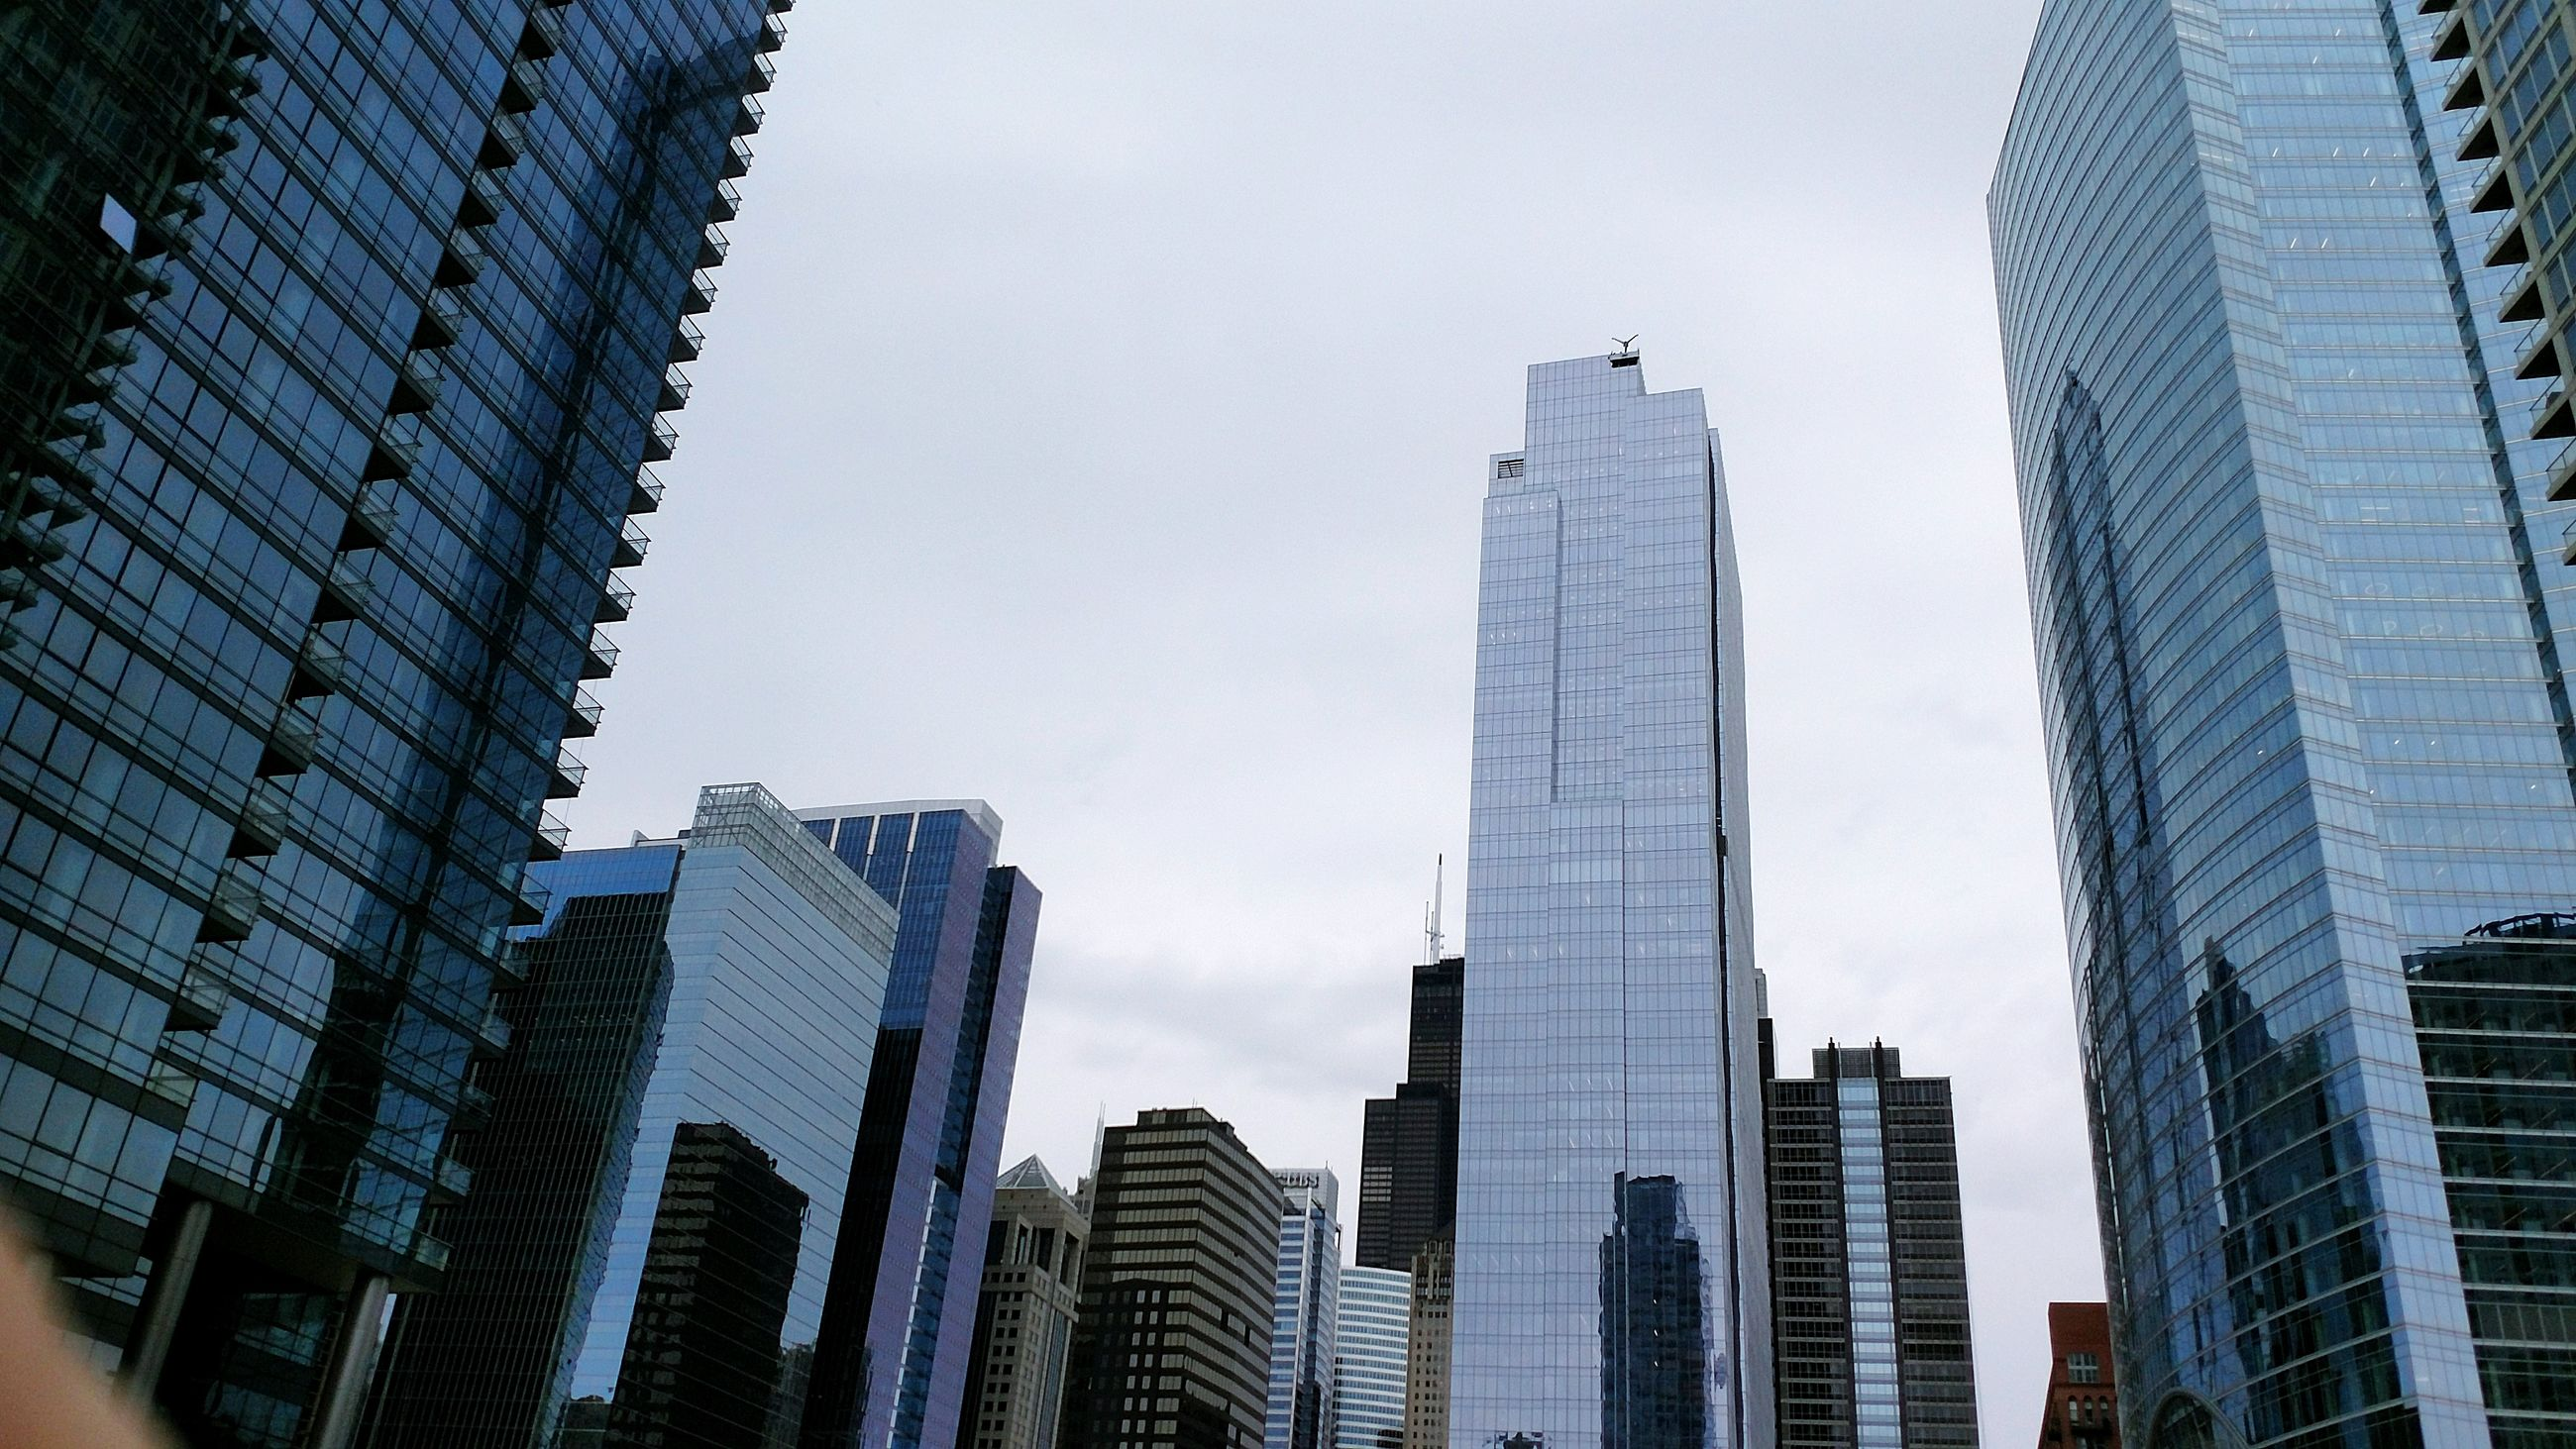 skyscraper, architecture, building exterior, built structure, modern, city, low angle view, sky, outdoors, day, downtown district, no people, tall, urban skyline, office park, cityscape